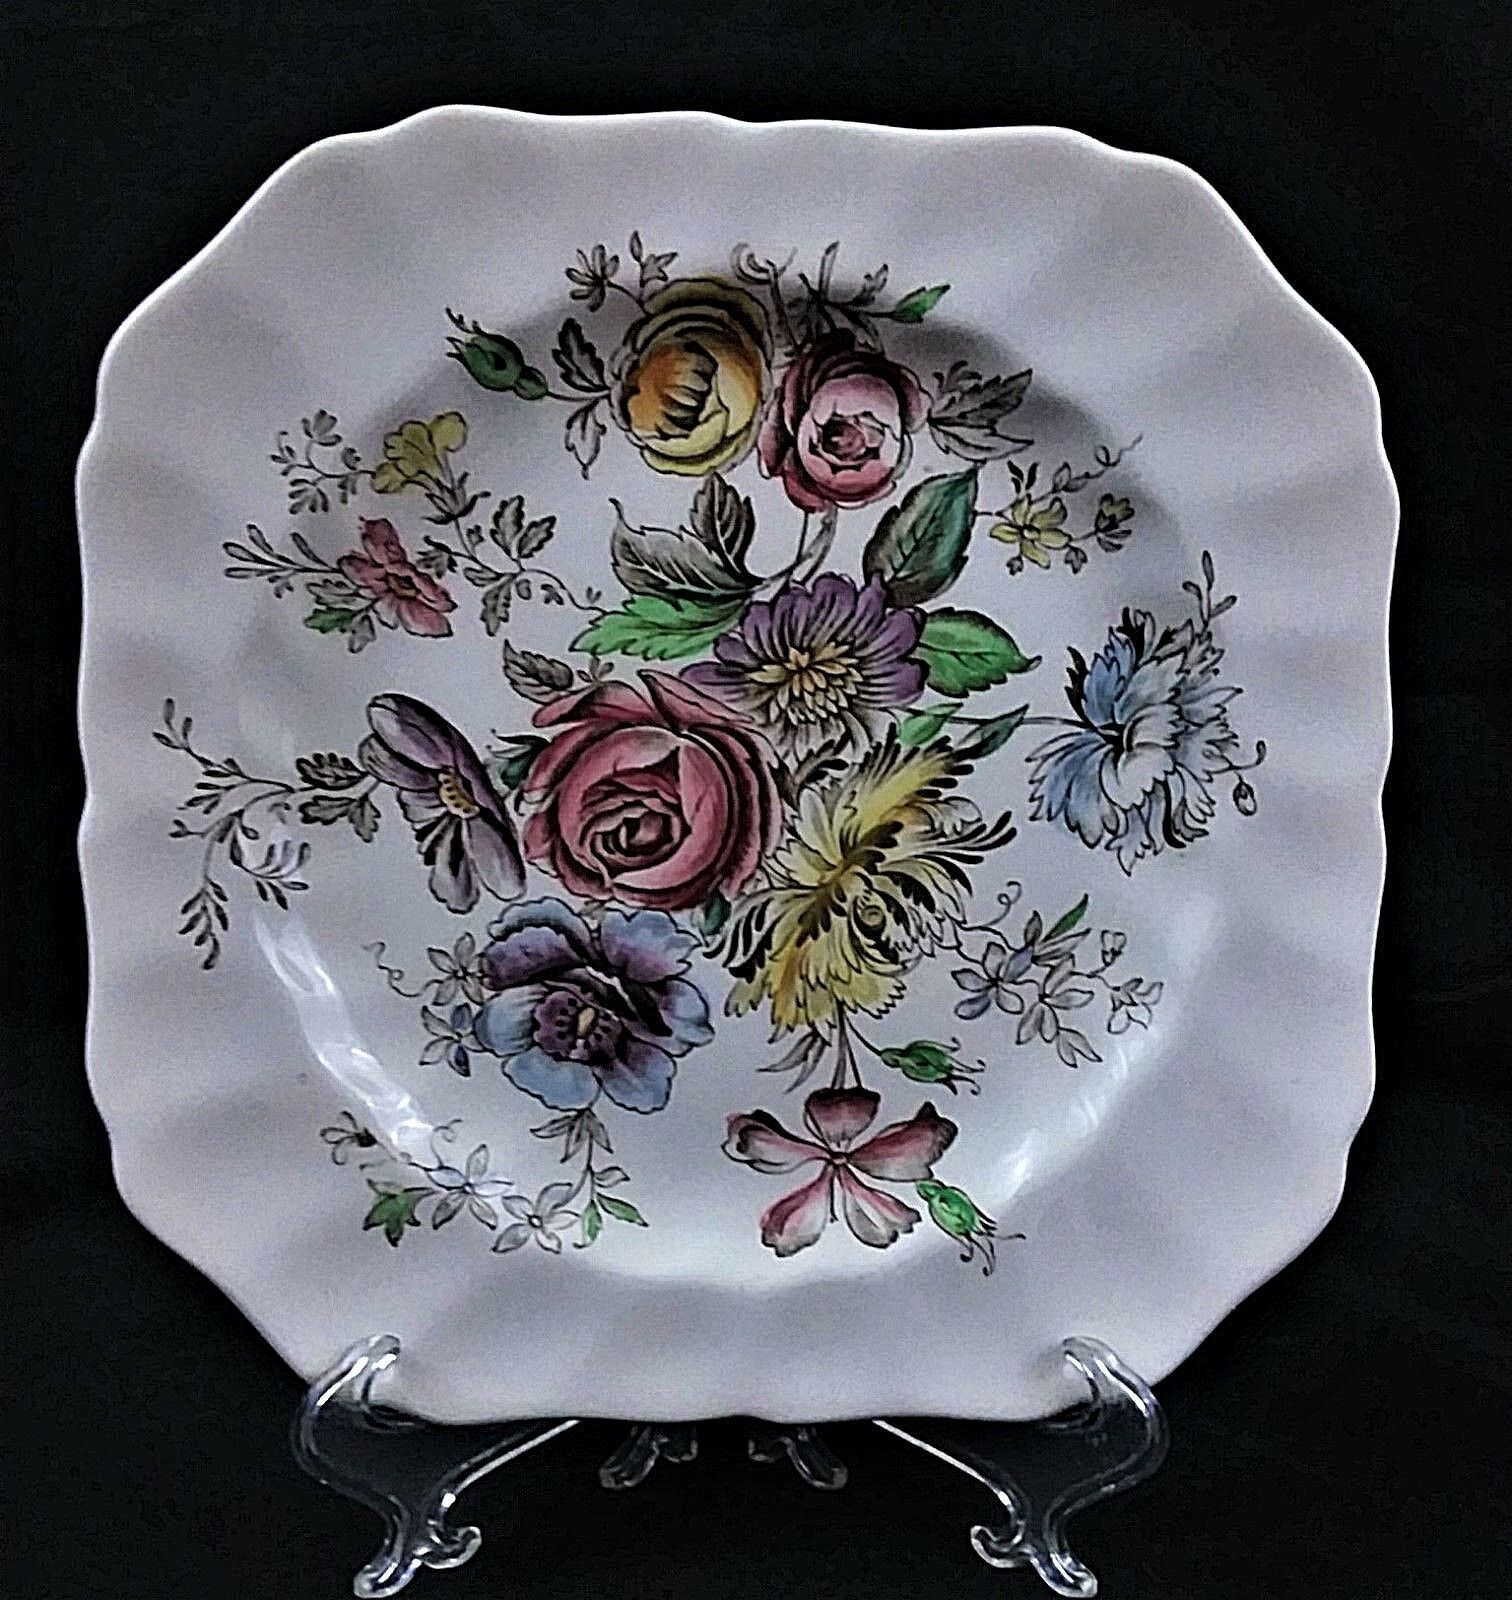 VTG COLLECTIBLE JOHNSON BROTHERS SHERATON SQUARE SALAD PLATE MADE IN ENGLAND